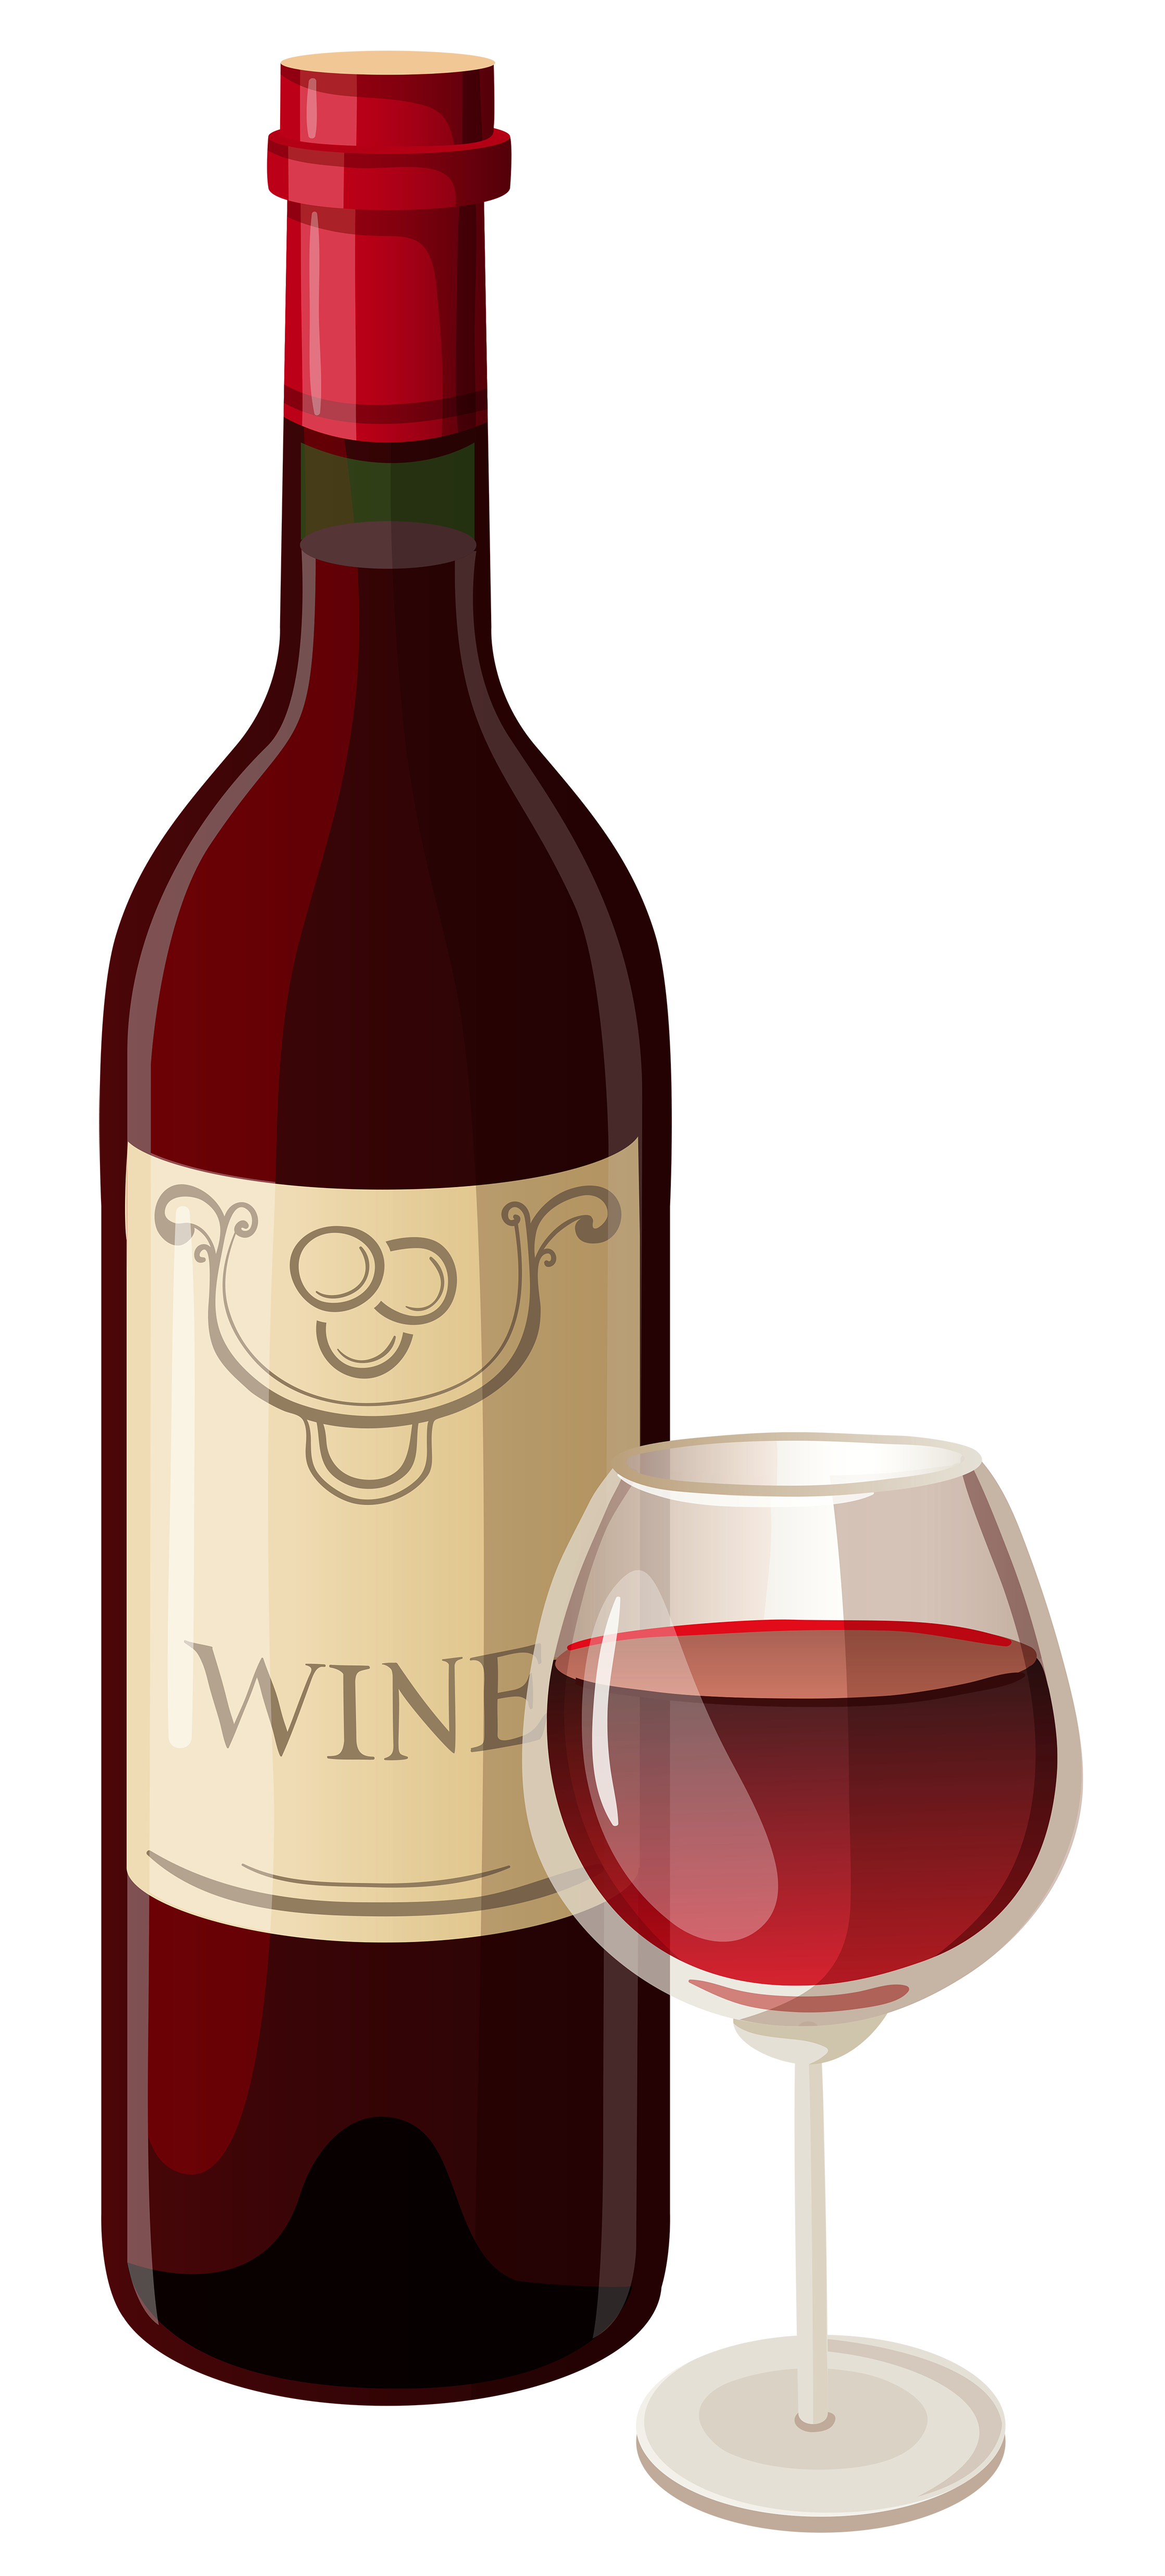 Wine snowflake clipart picture transparent stock Related image | advent tree ideas | Pinterest | Wines, Pdf and Bottle picture transparent stock